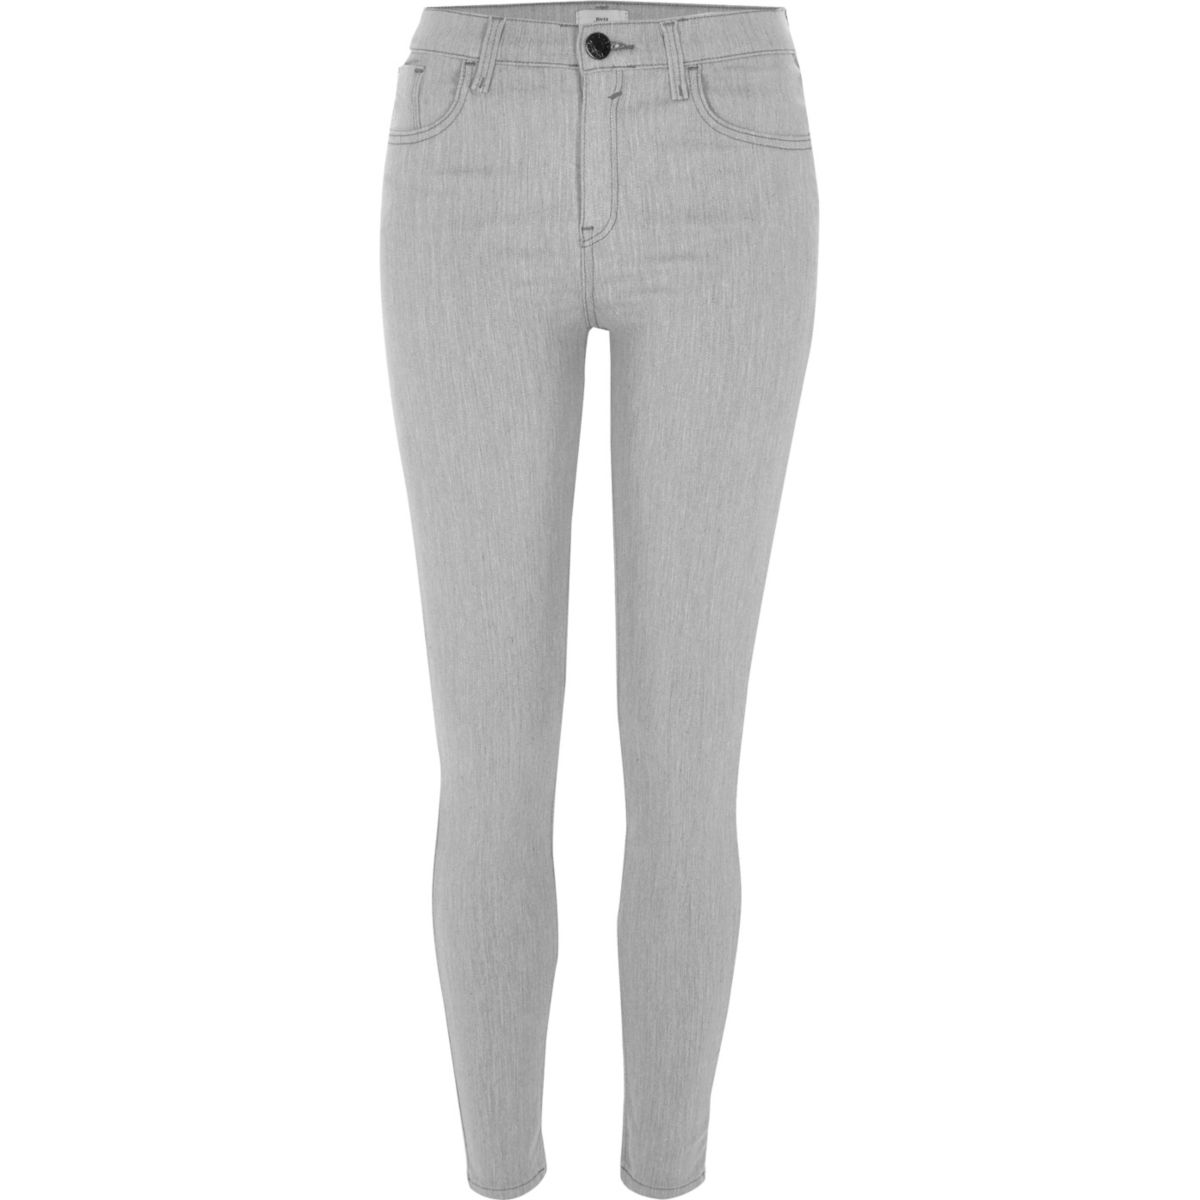 Light grey wash Amelie super skinny jeans